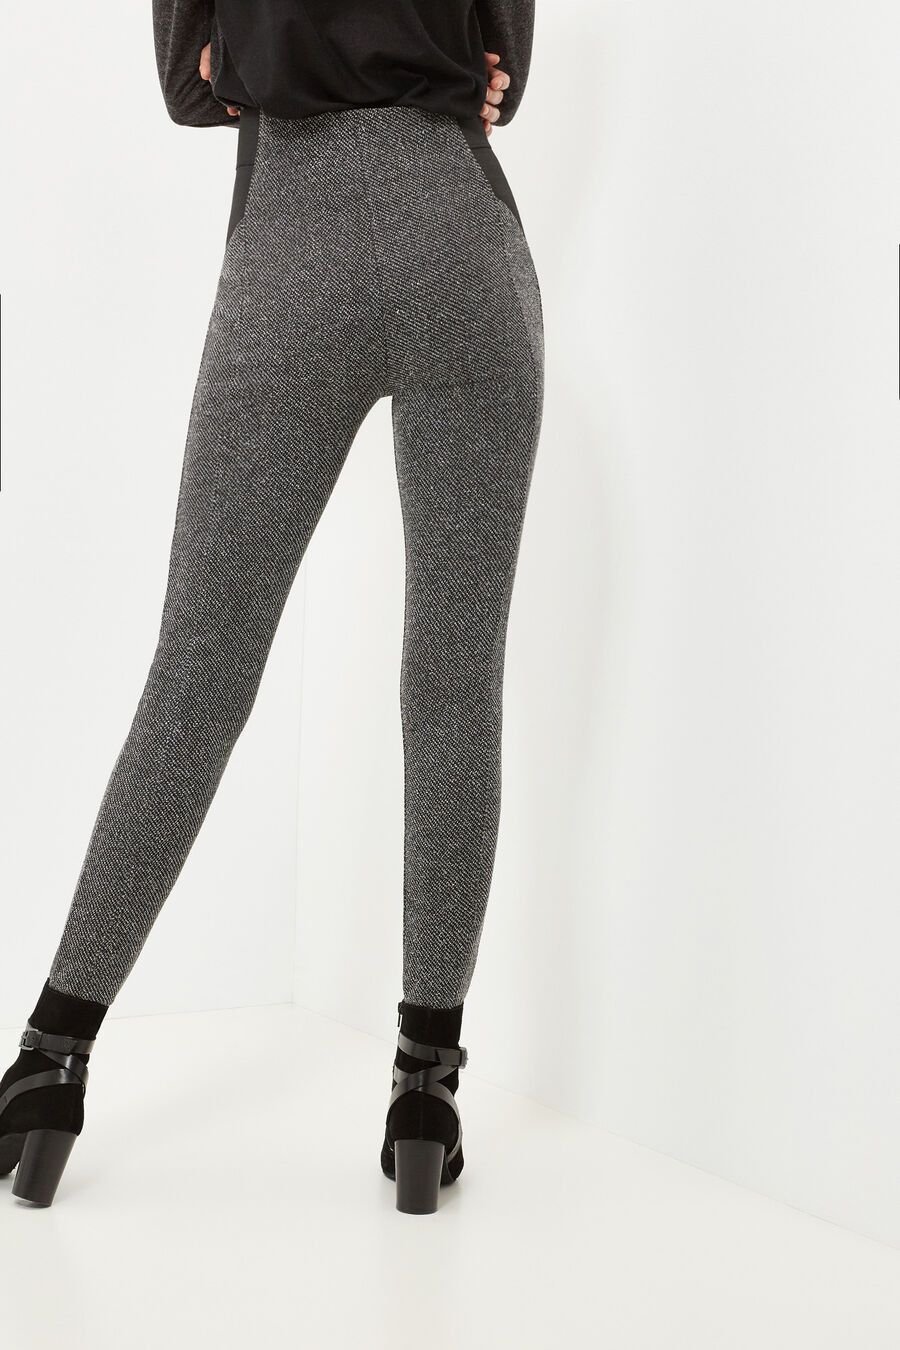 Structured leggings